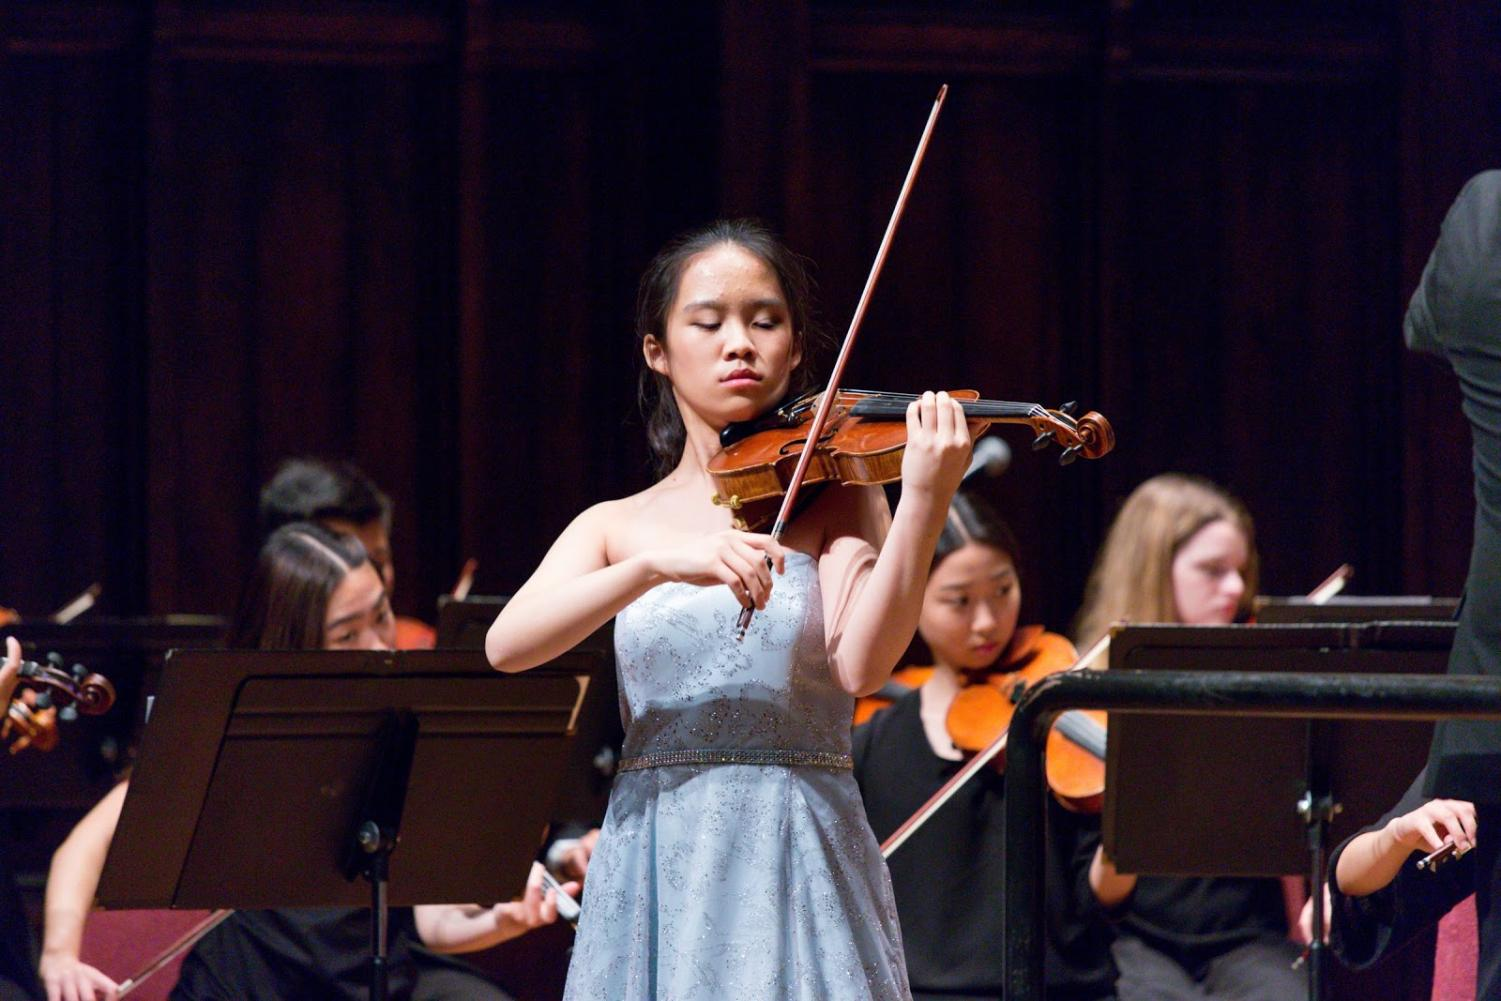 Junior Emily Yang was the concertmaster last year for the All-Southern California Honor Symphony Orchestra.